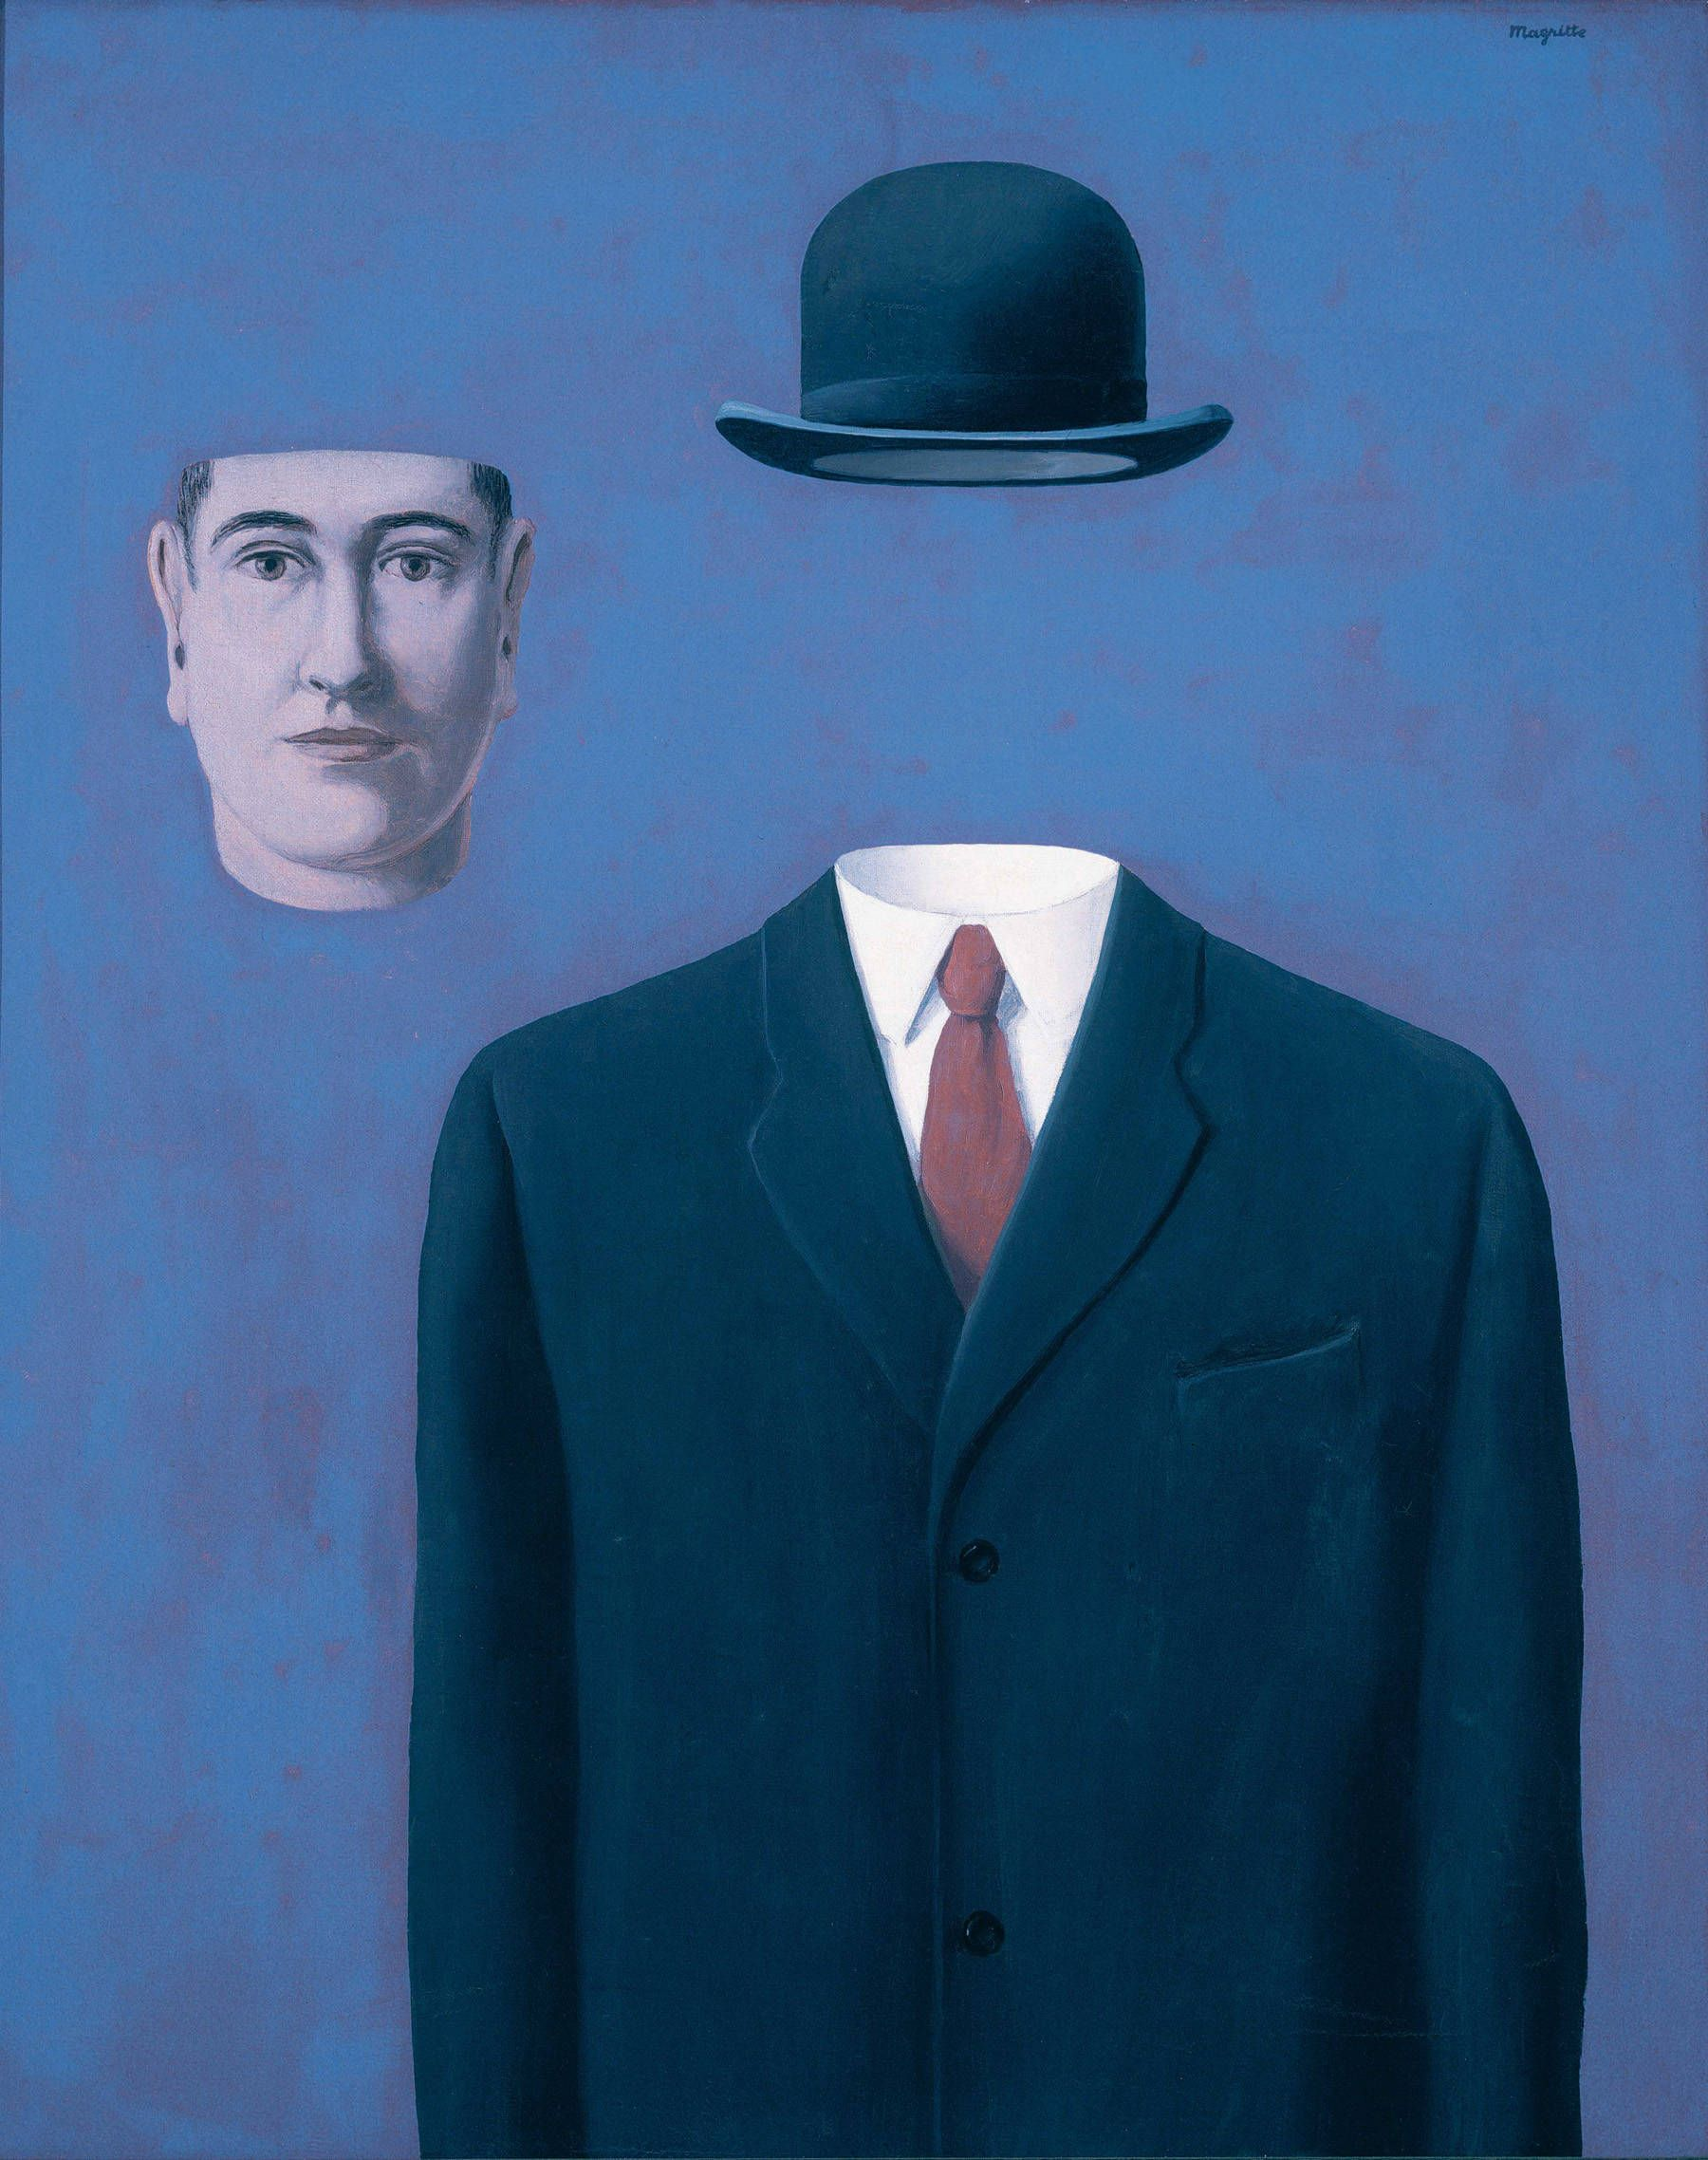 Rene Magritte | Magritte paintings, Magritte and Google search